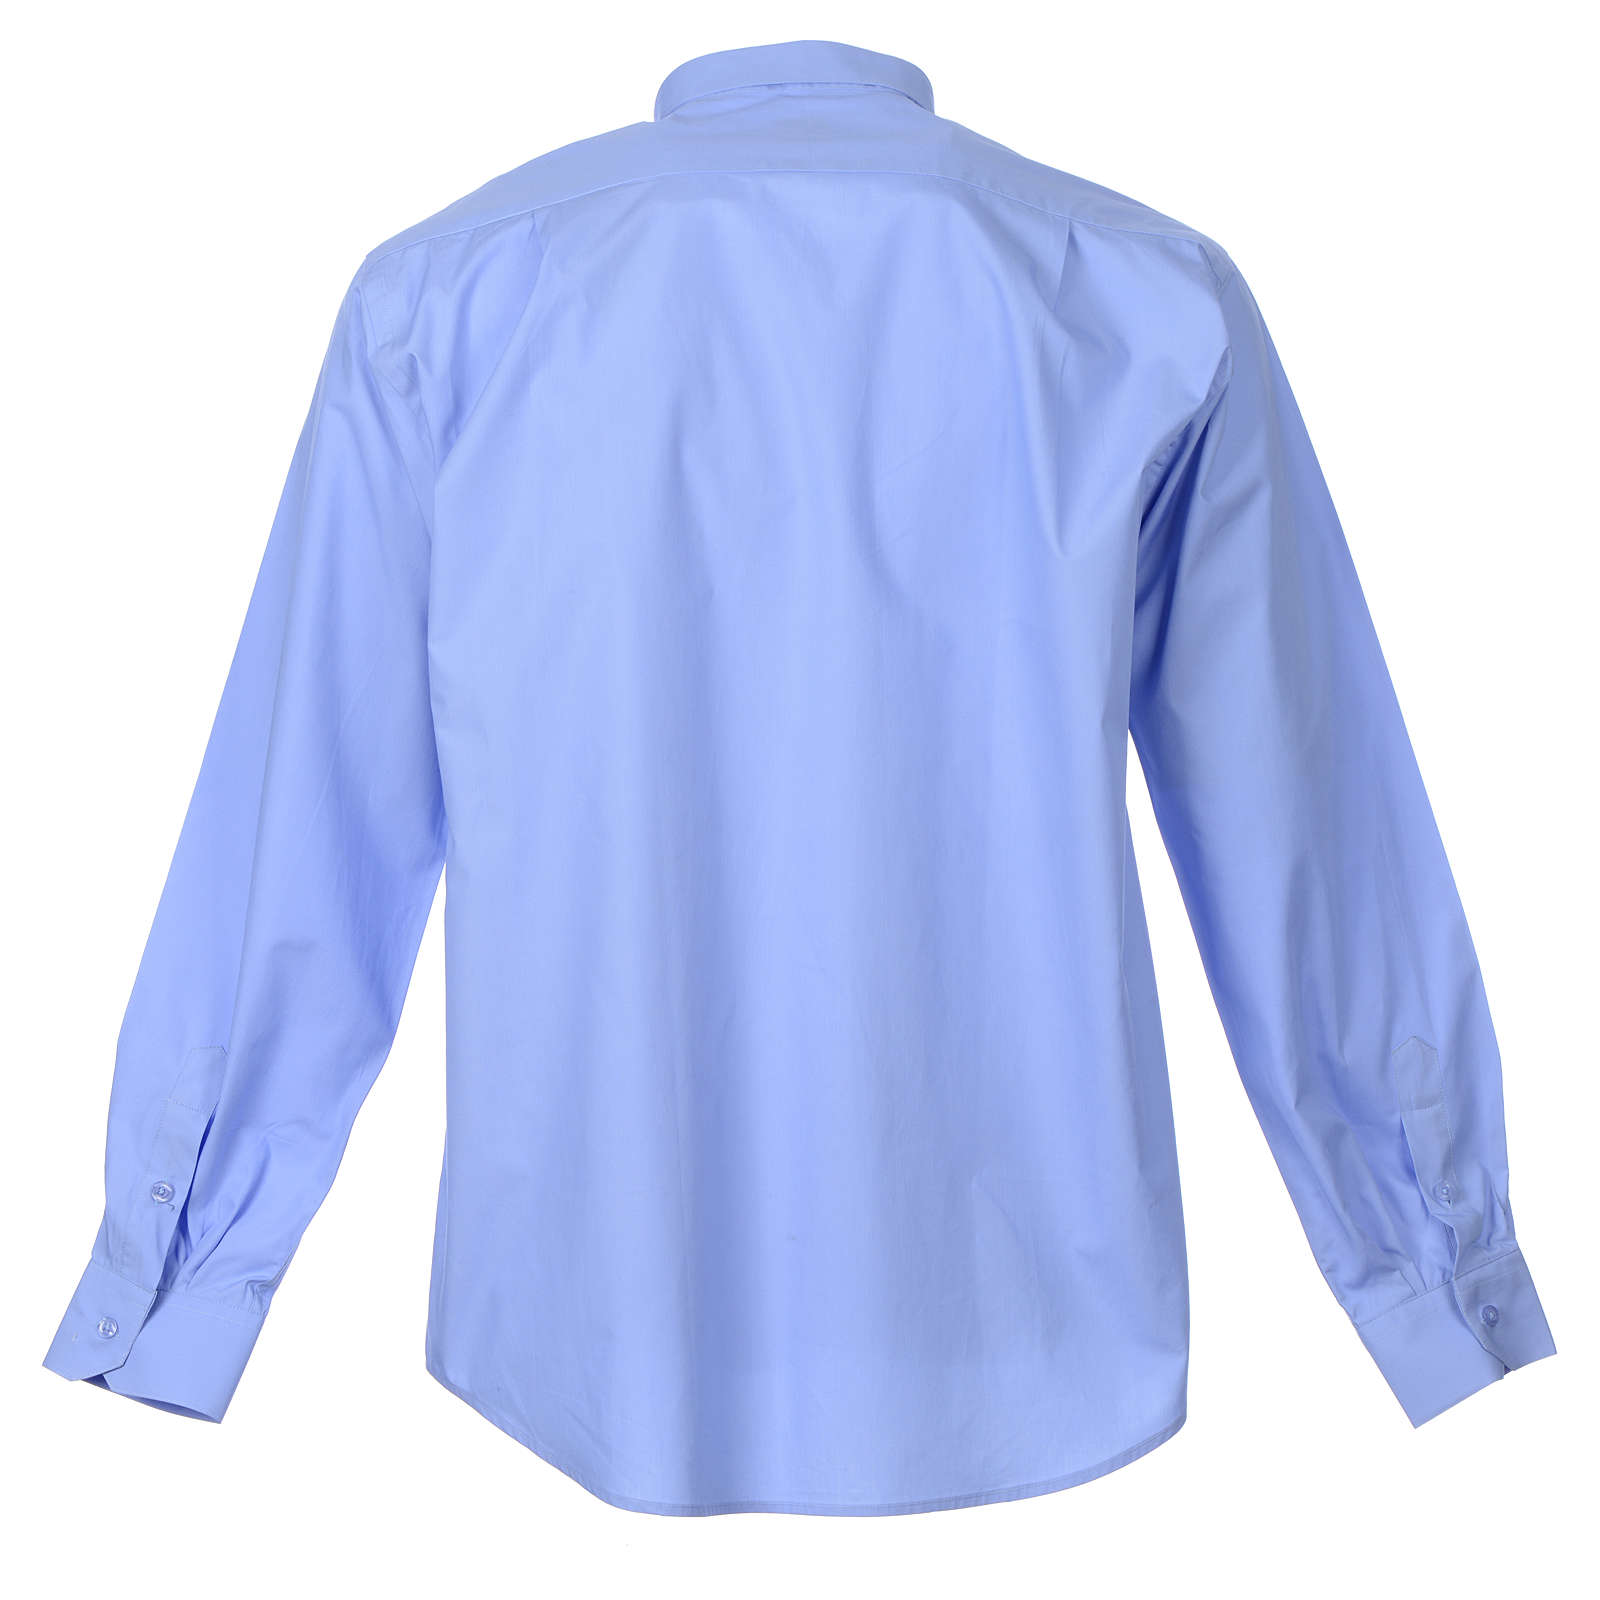 STOCK Clergy shirt, long sleeves in light blue mixed cotton 4